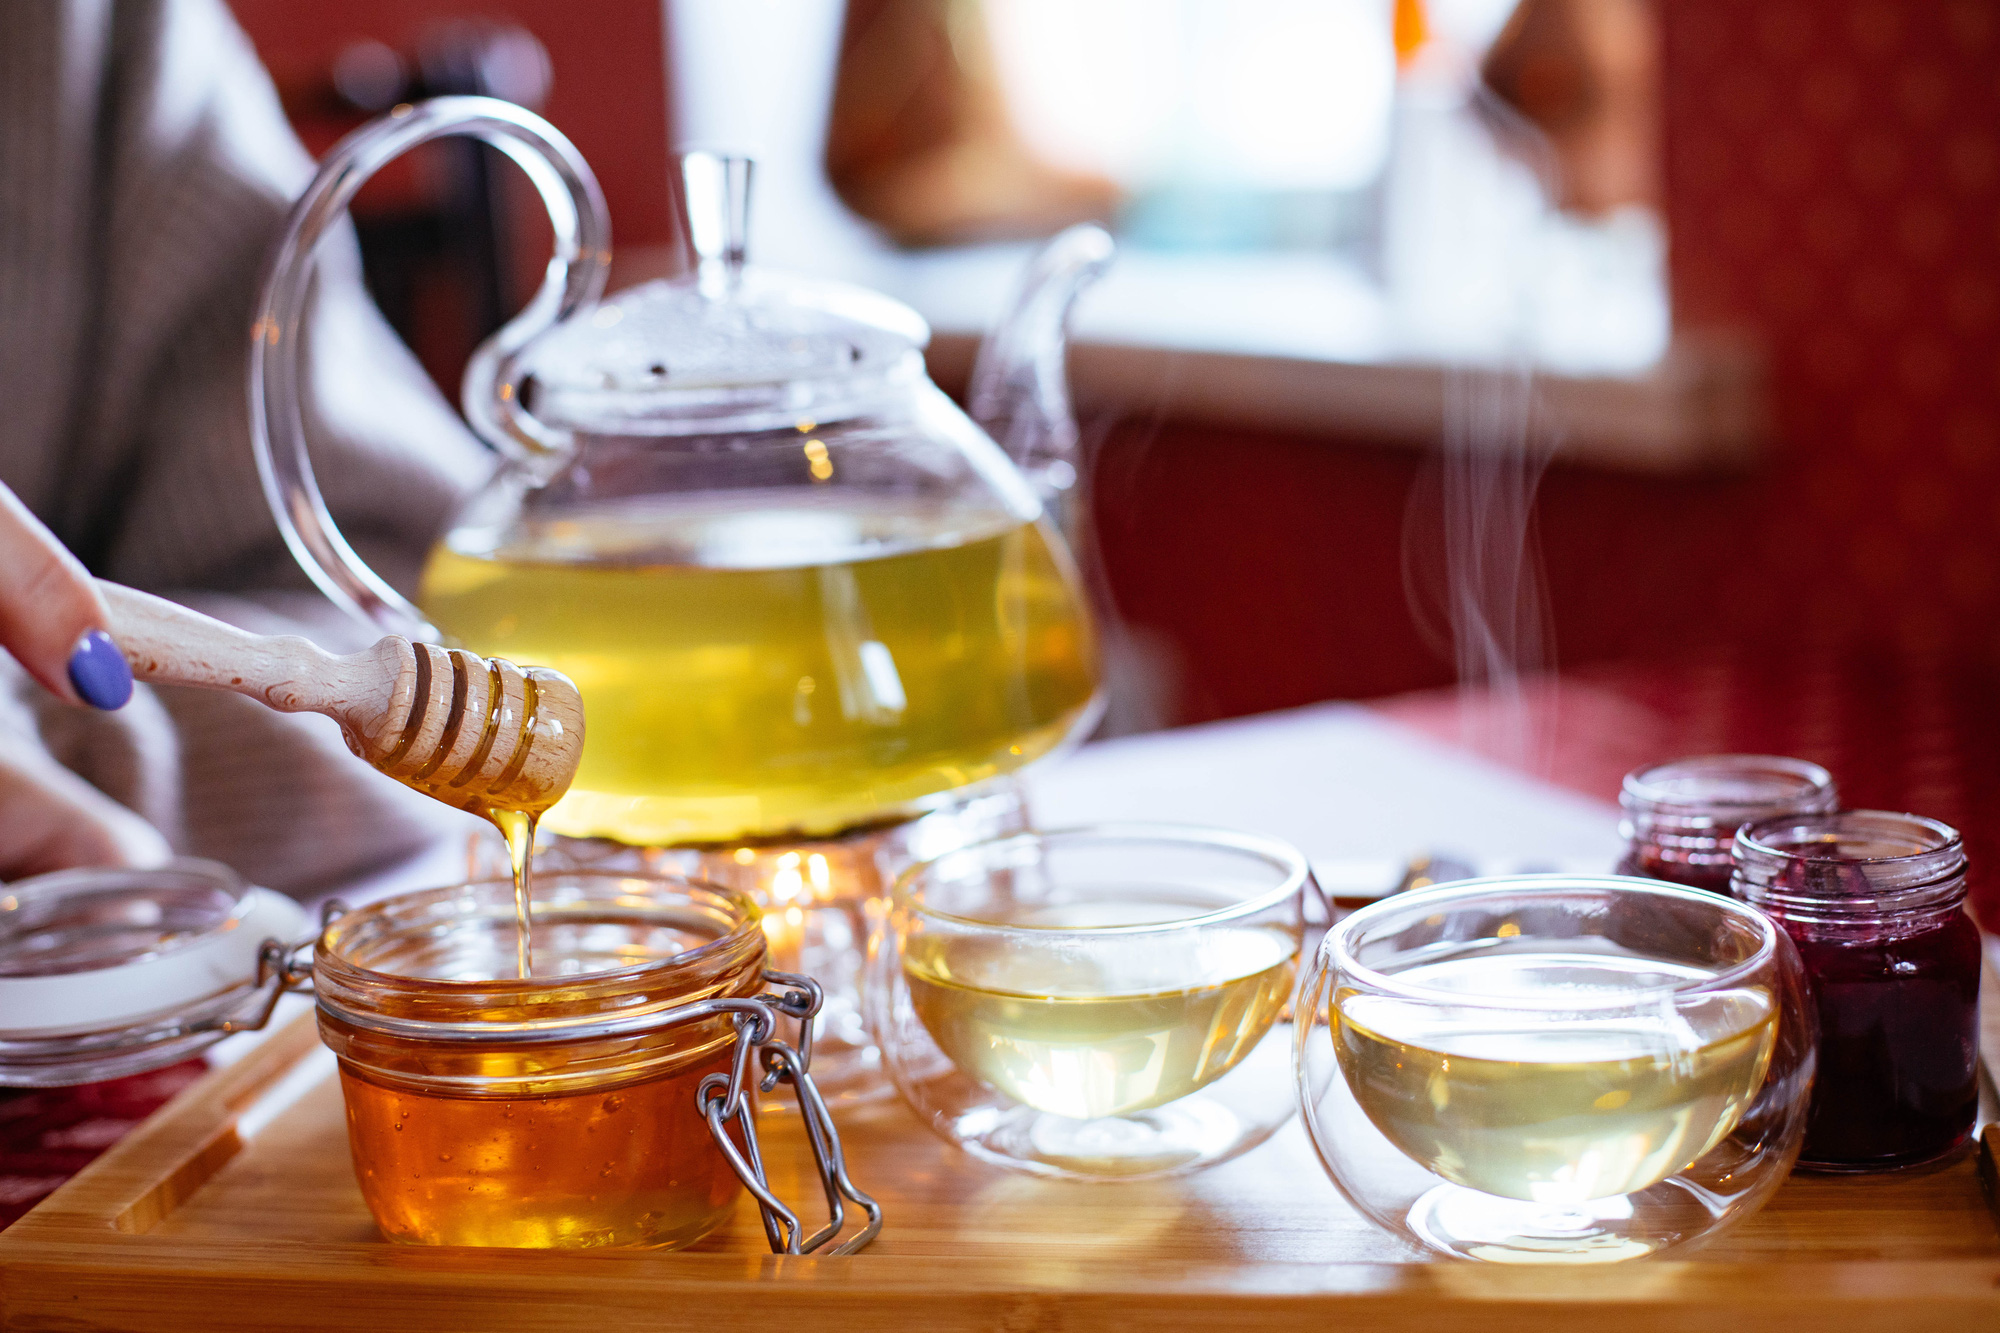 teapot-and-teacups-with-tea-and-honey-on-tray-1872886